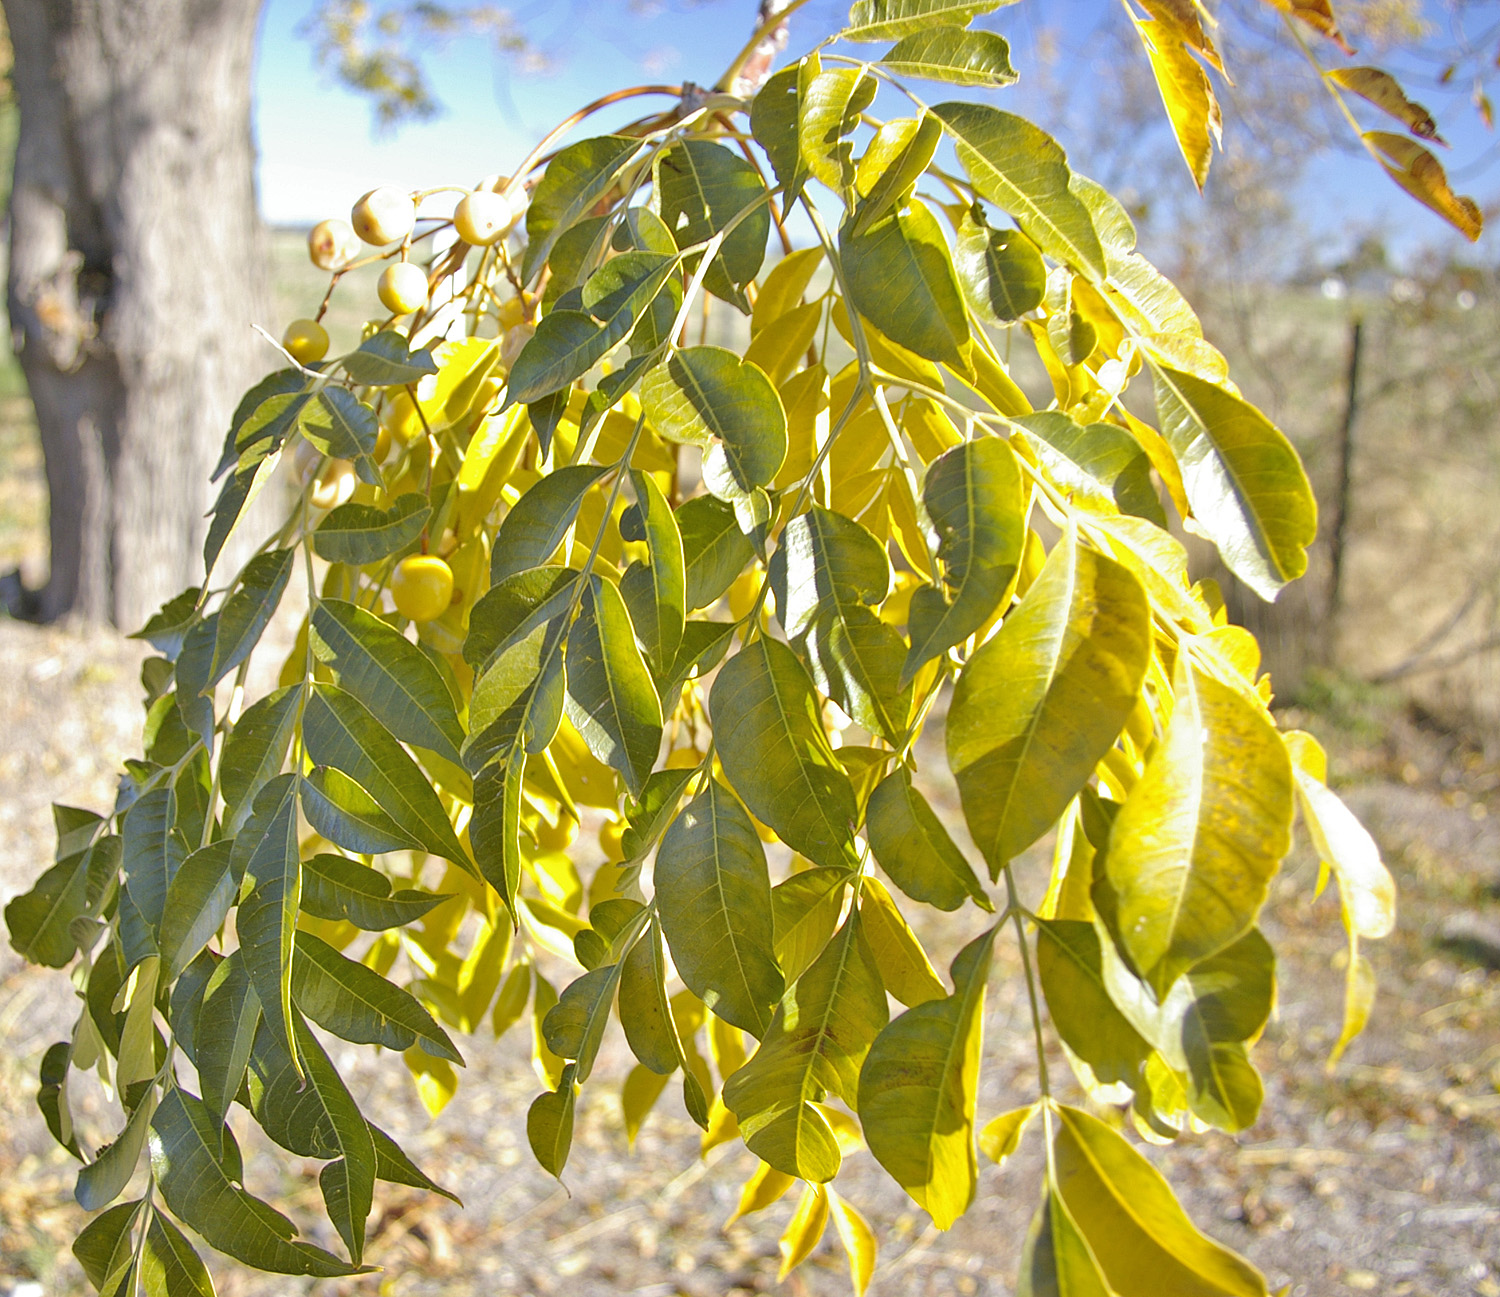 Umbrella Plant Toxic: Chinaberry Poisoning In Horses